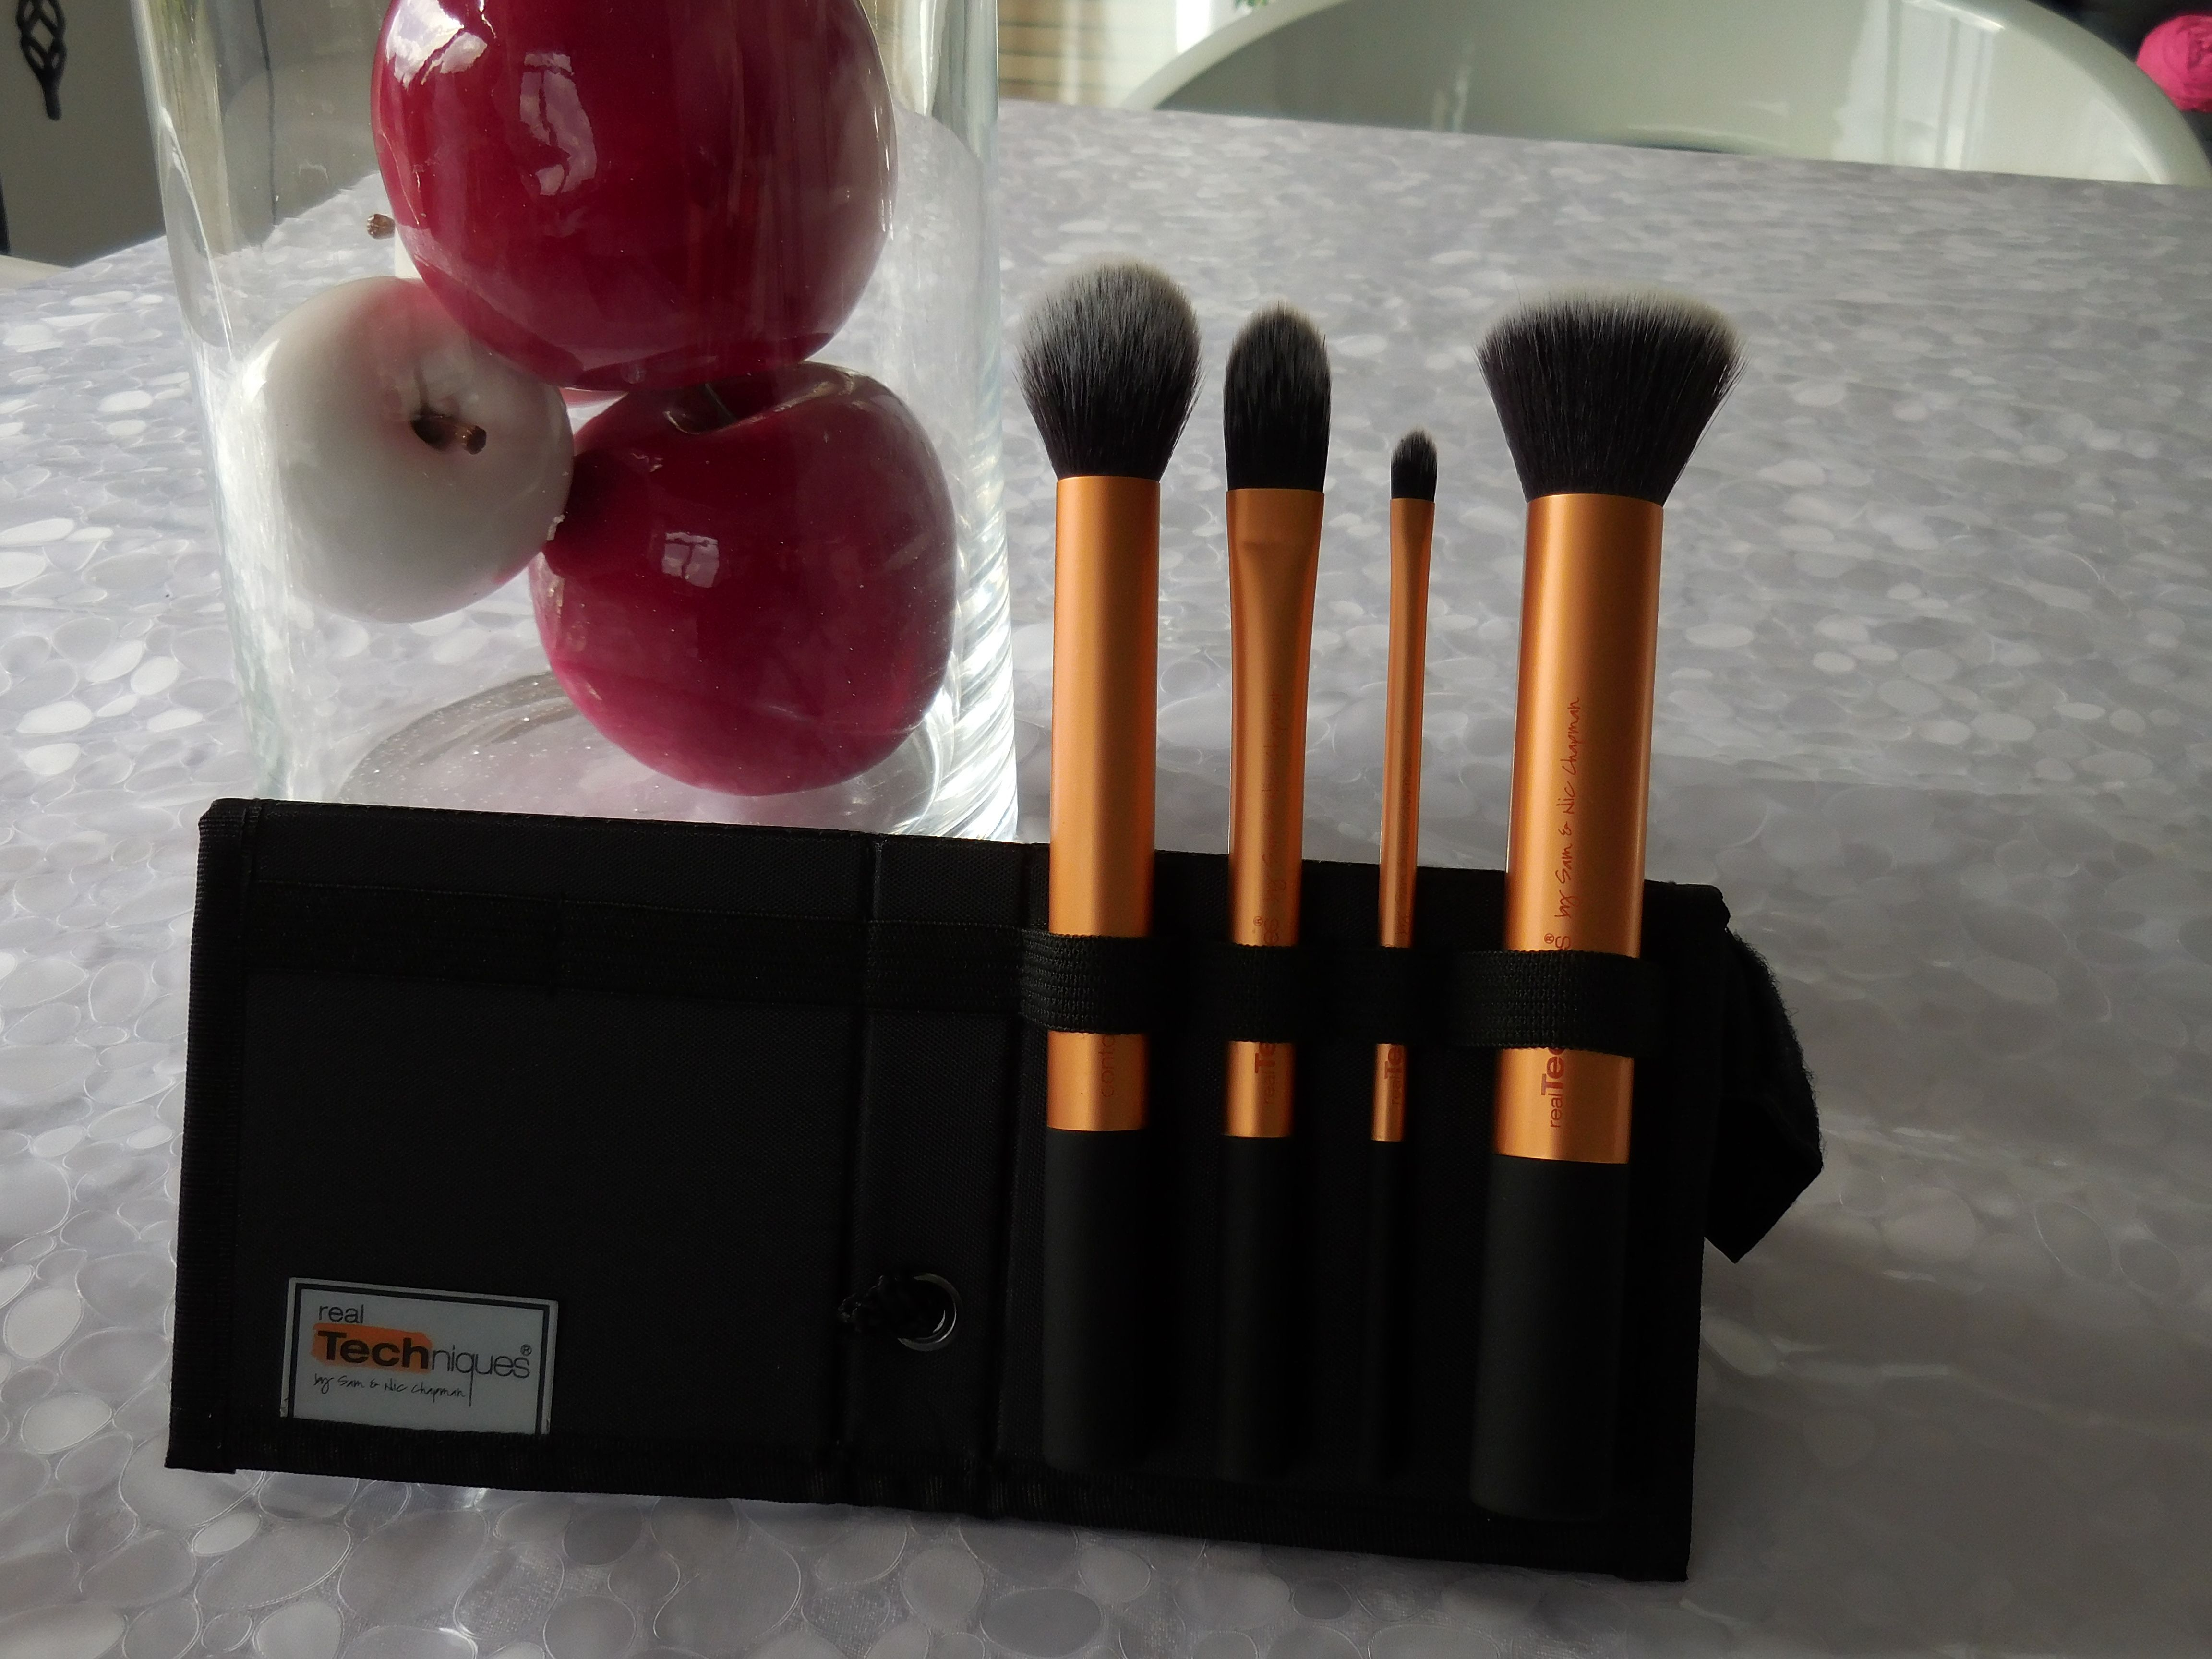 Brushes Real Techniques for the face #RealTechniques #Brushes #MakeUp